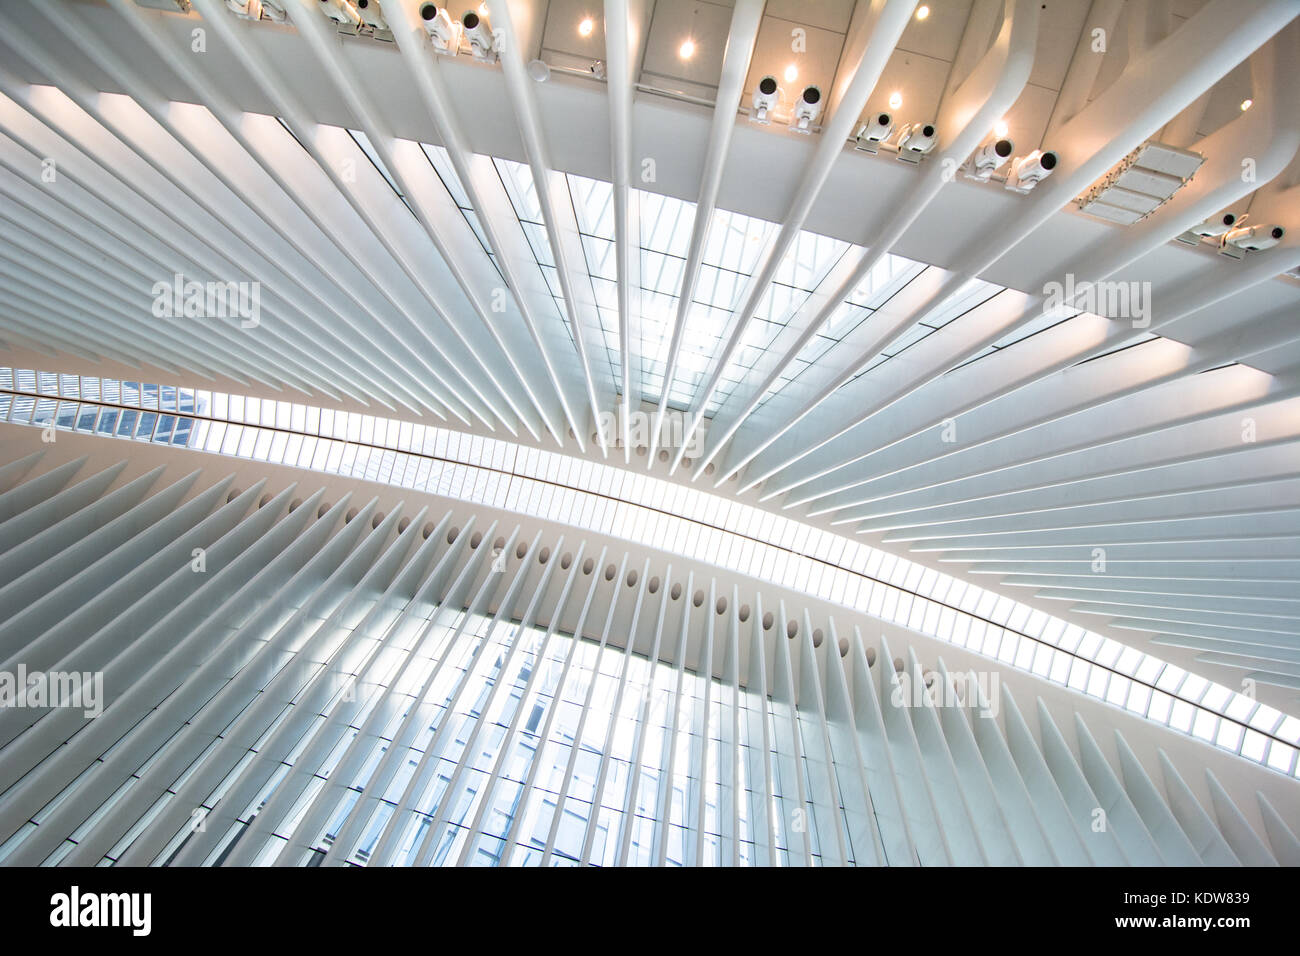 Die beeindruckende Architektur des Oculus am World Trade Center Verkehrsknotenpunkt in New York City, United States Stockbild